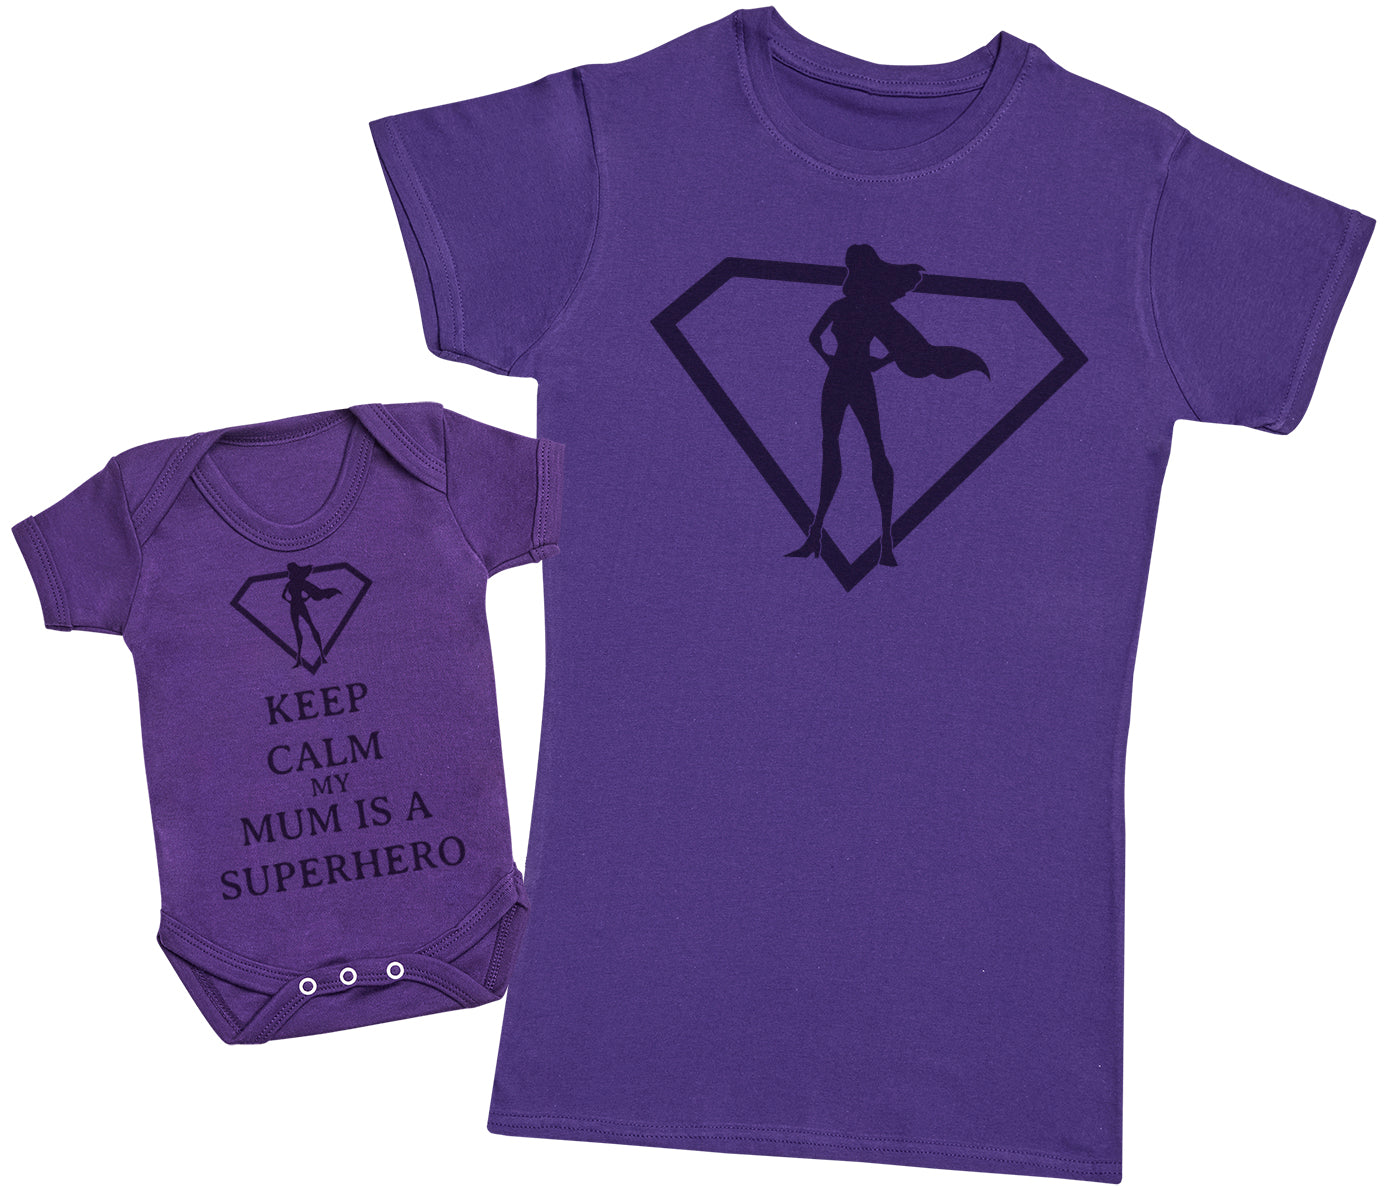 Keep Calm My Mum Is A Superhero Matching Auntie Baby Gift Set - Womens T Shirt & Baby Bodysuit